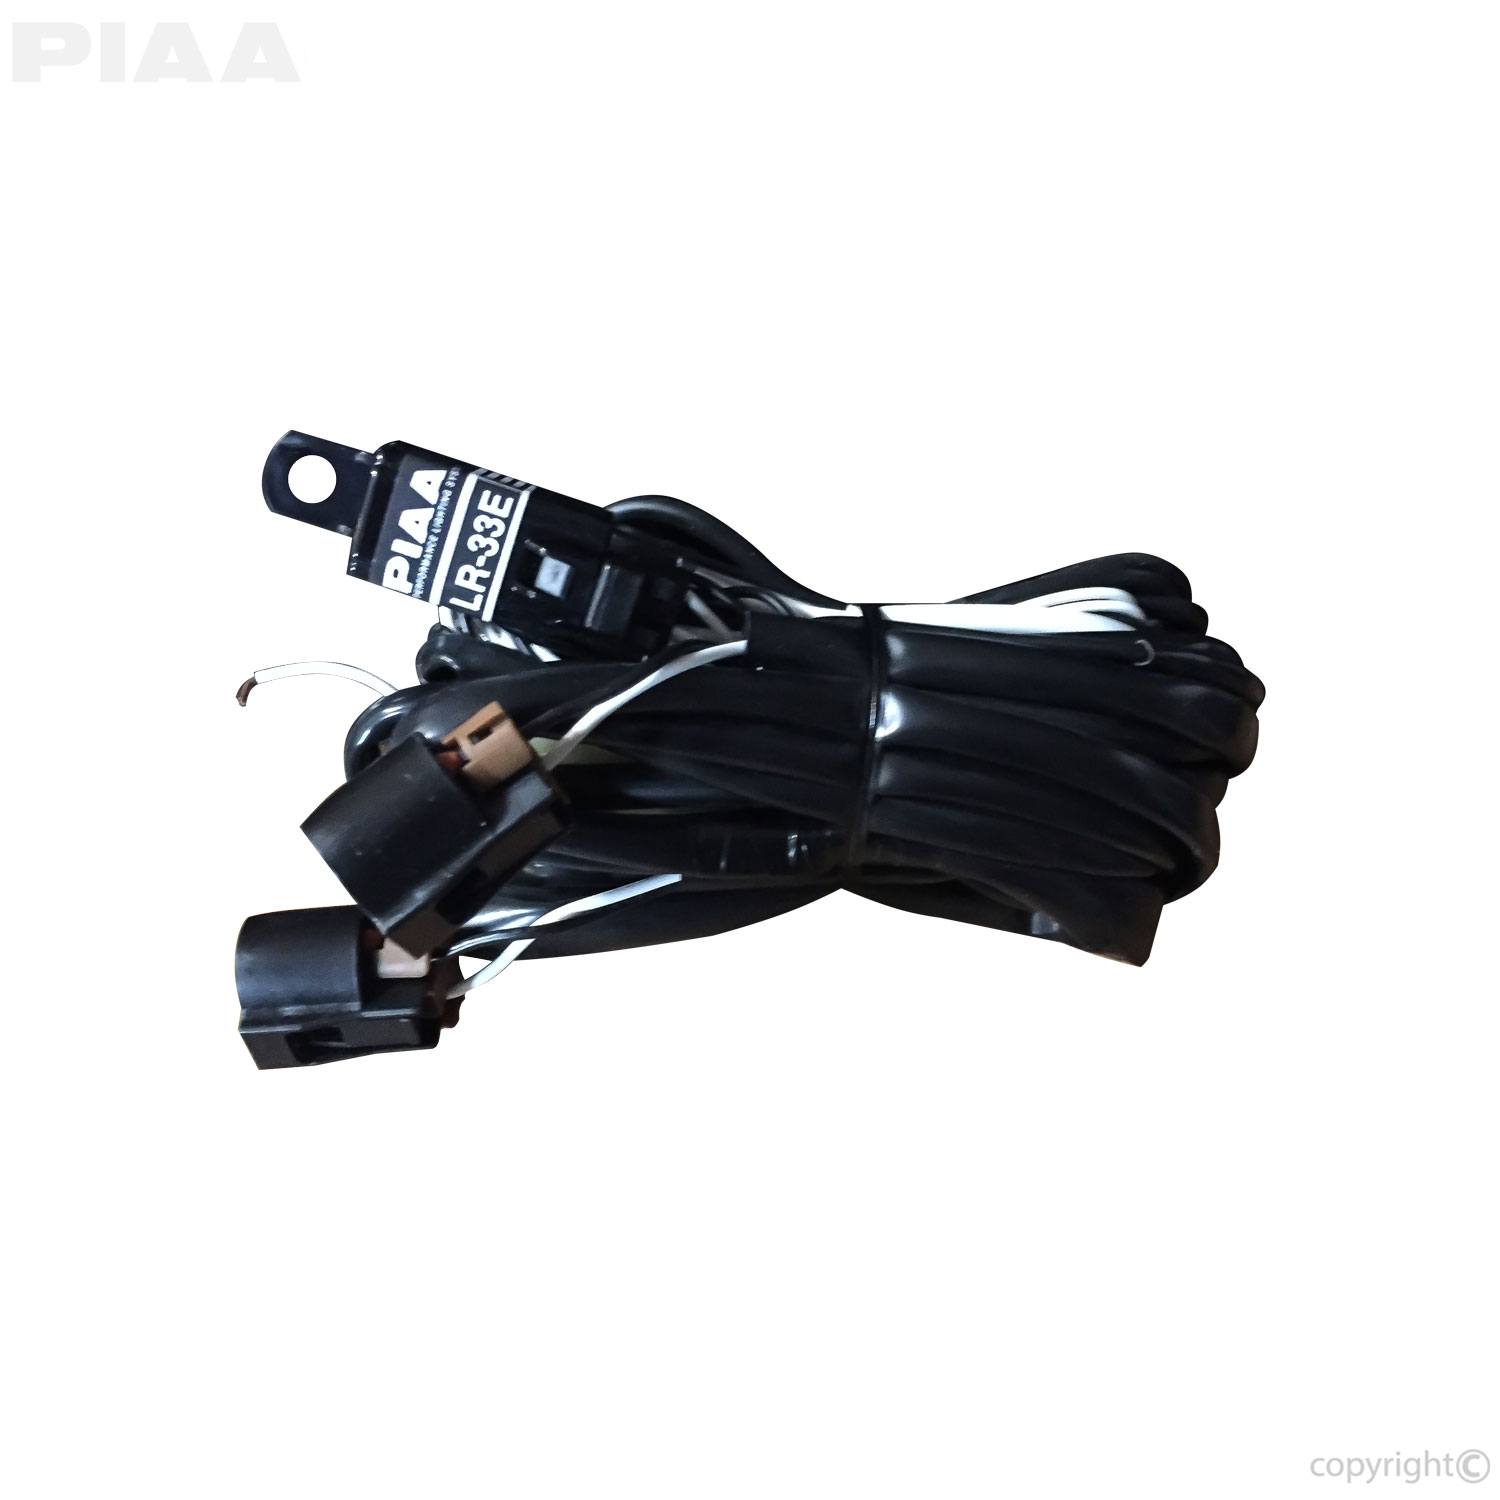 Piaa Wiring Harness Wire Data Schema Apc For 410 Series Driving Light Kit Rh Com Ipf